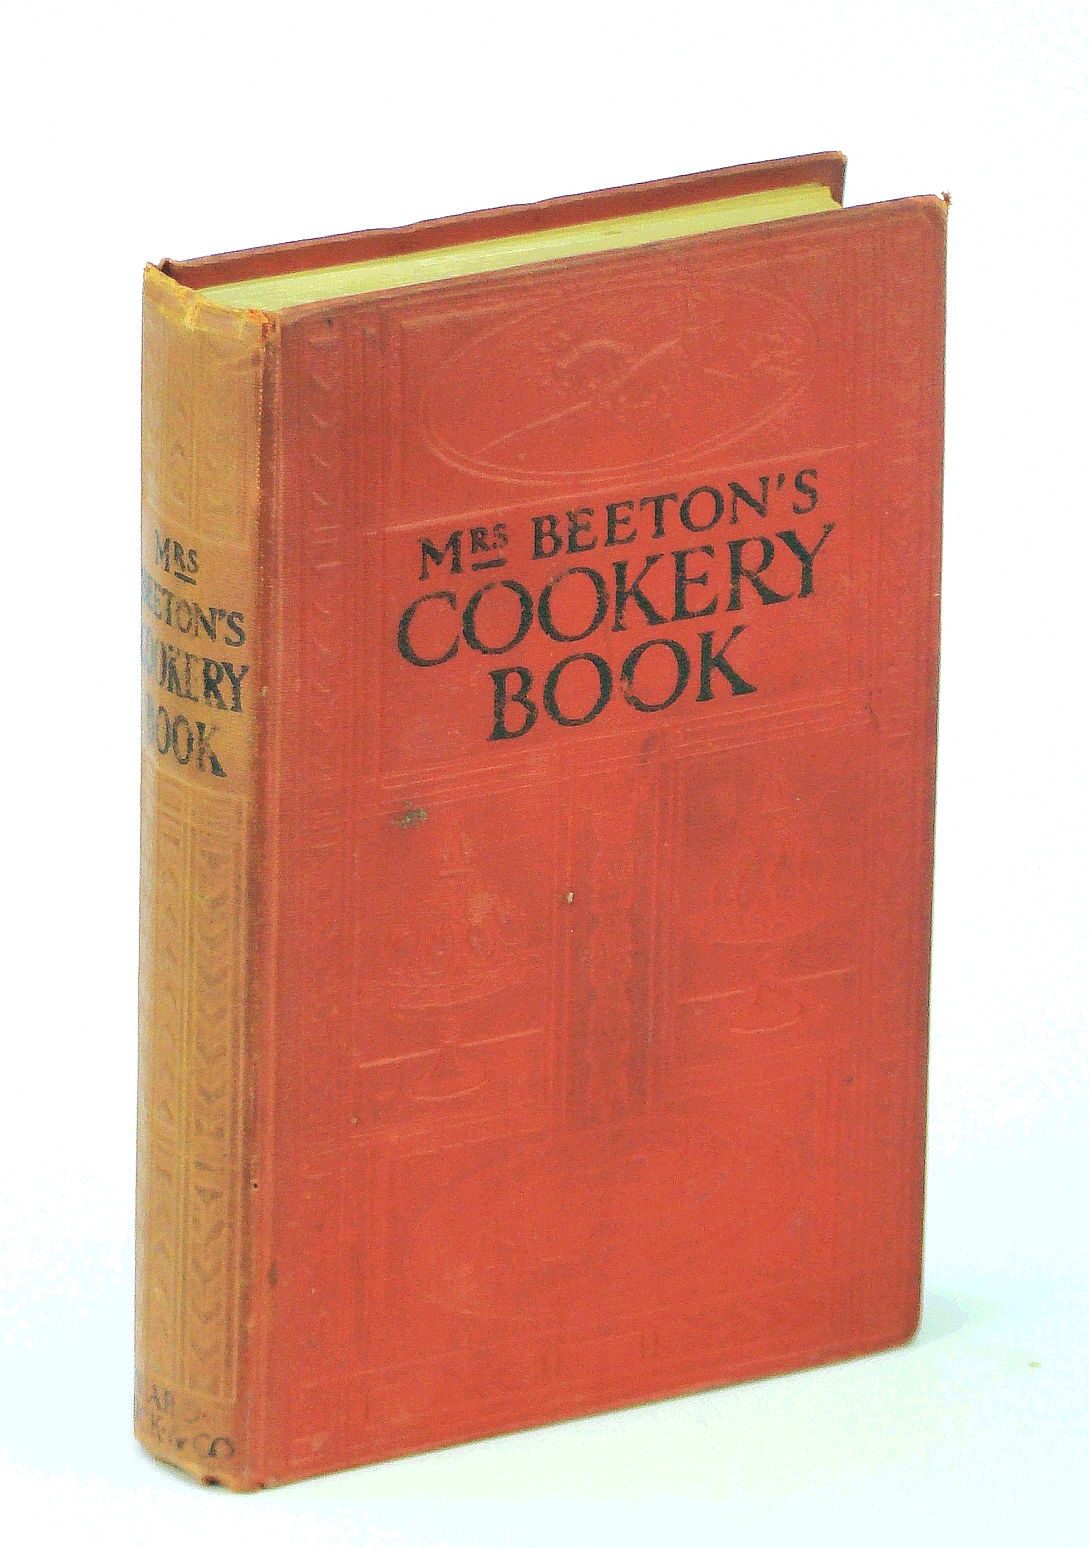 Image for Mrs Beeton's Cookery Book 1913